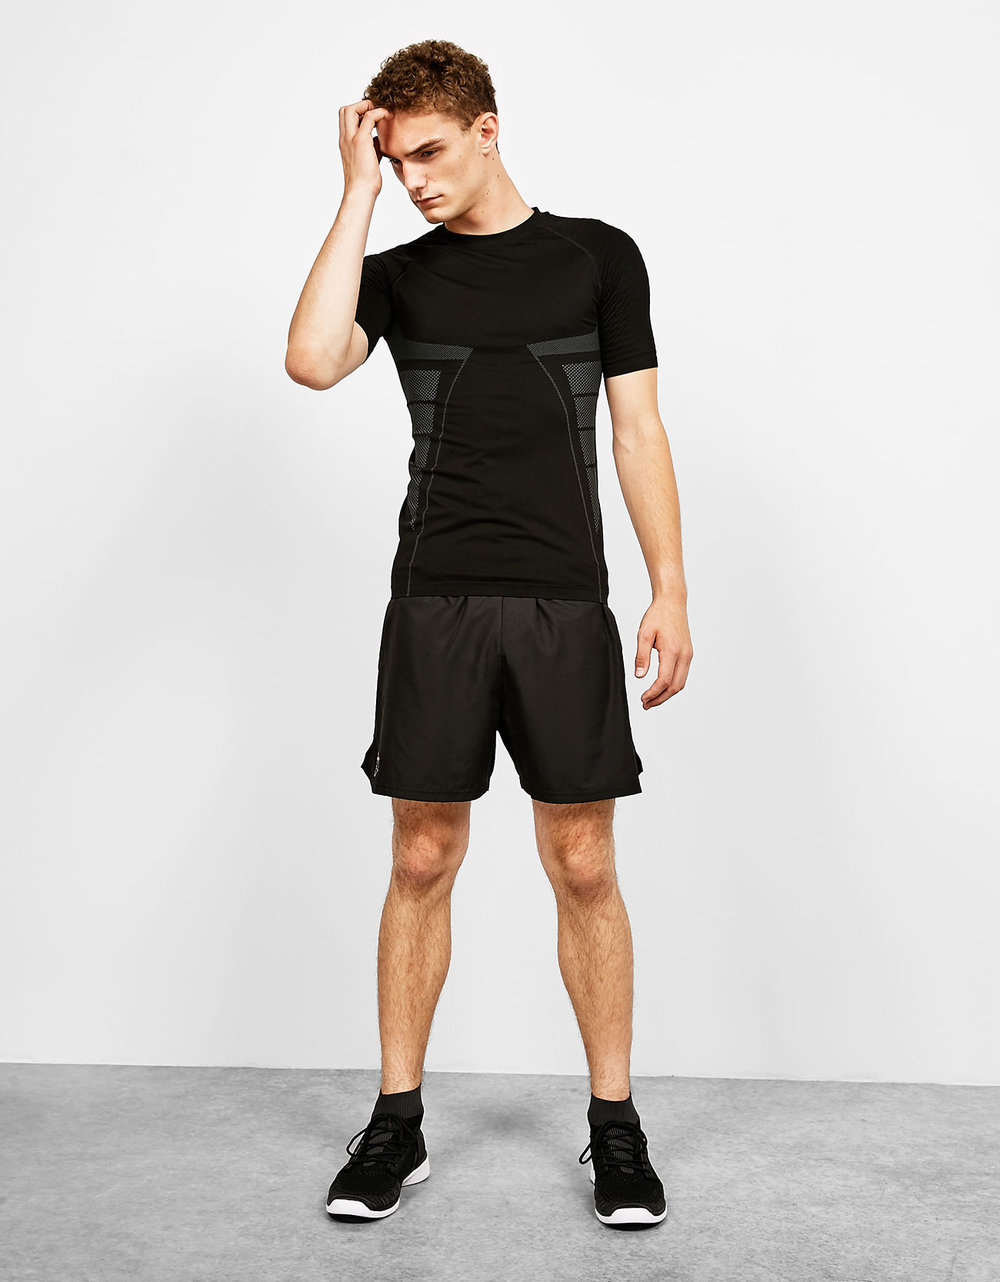 Seamless technical sport T-shirt, £12.99 Sports Bermuda shorts with reflective detail, £15.99 Men's faux sock ankle boots, £39.99